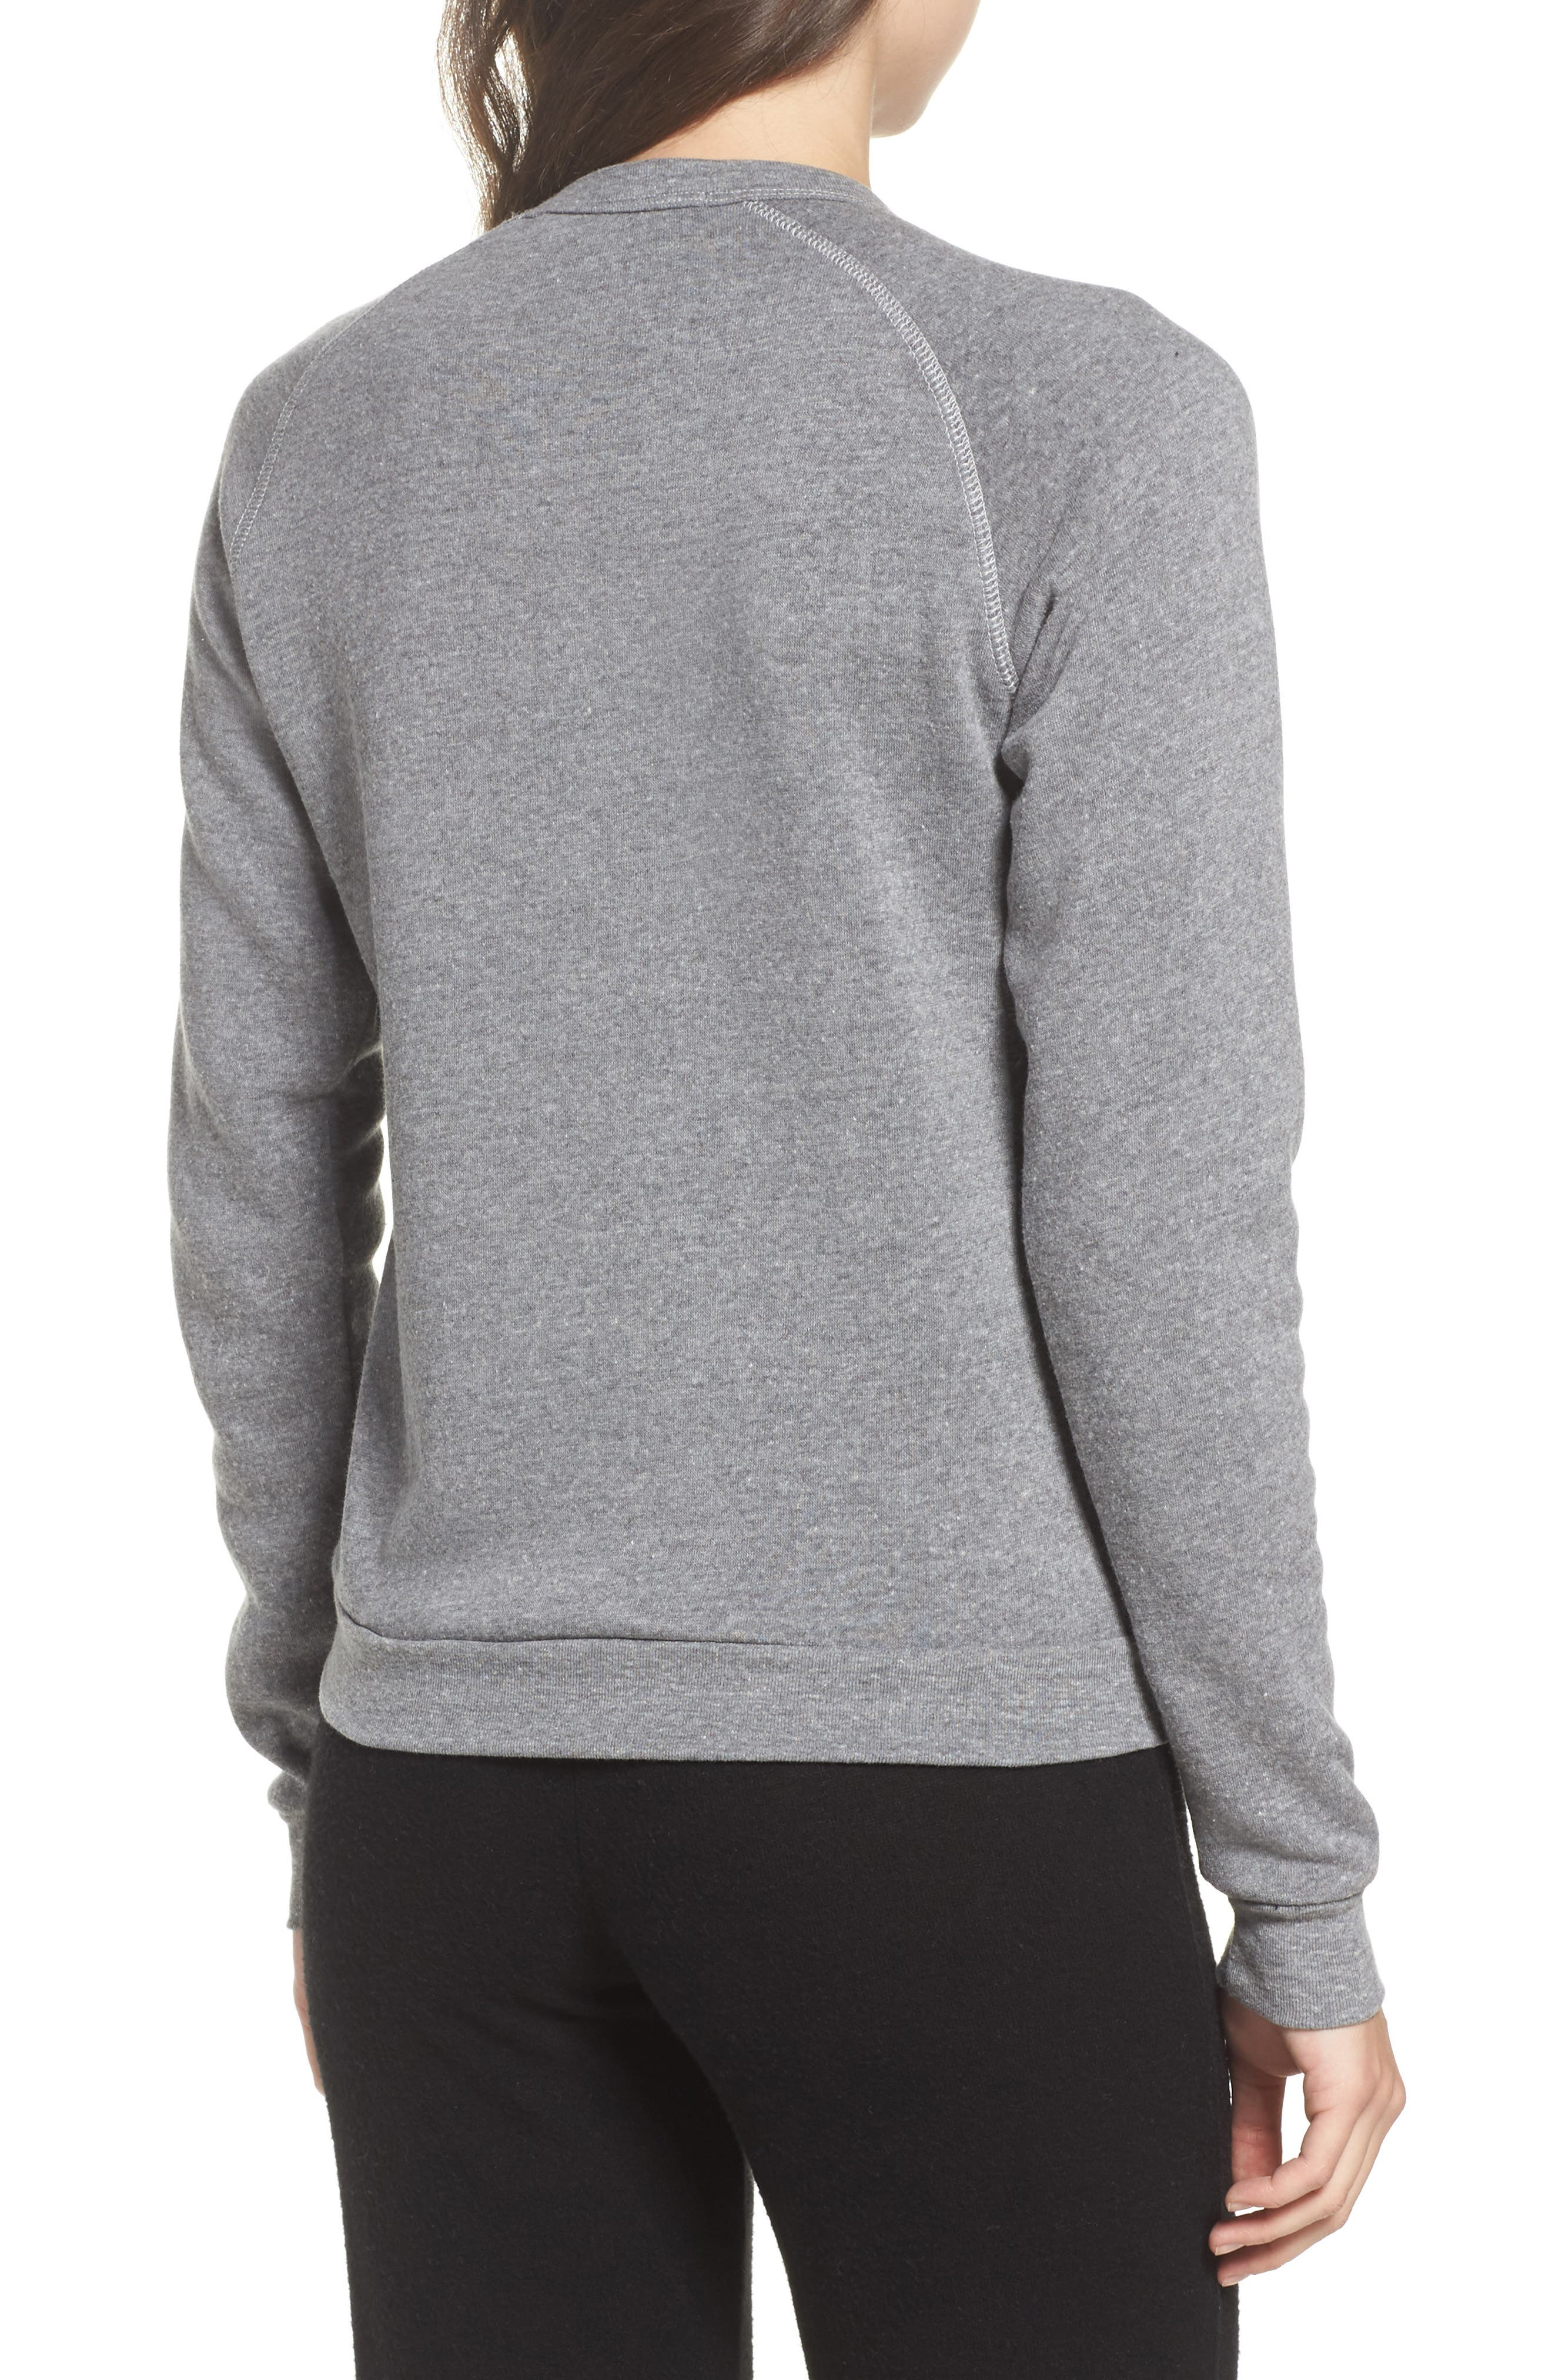 The Future is Female French Terry Sweatshirt,                             Alternate thumbnail 2, color,                             Heather Grey